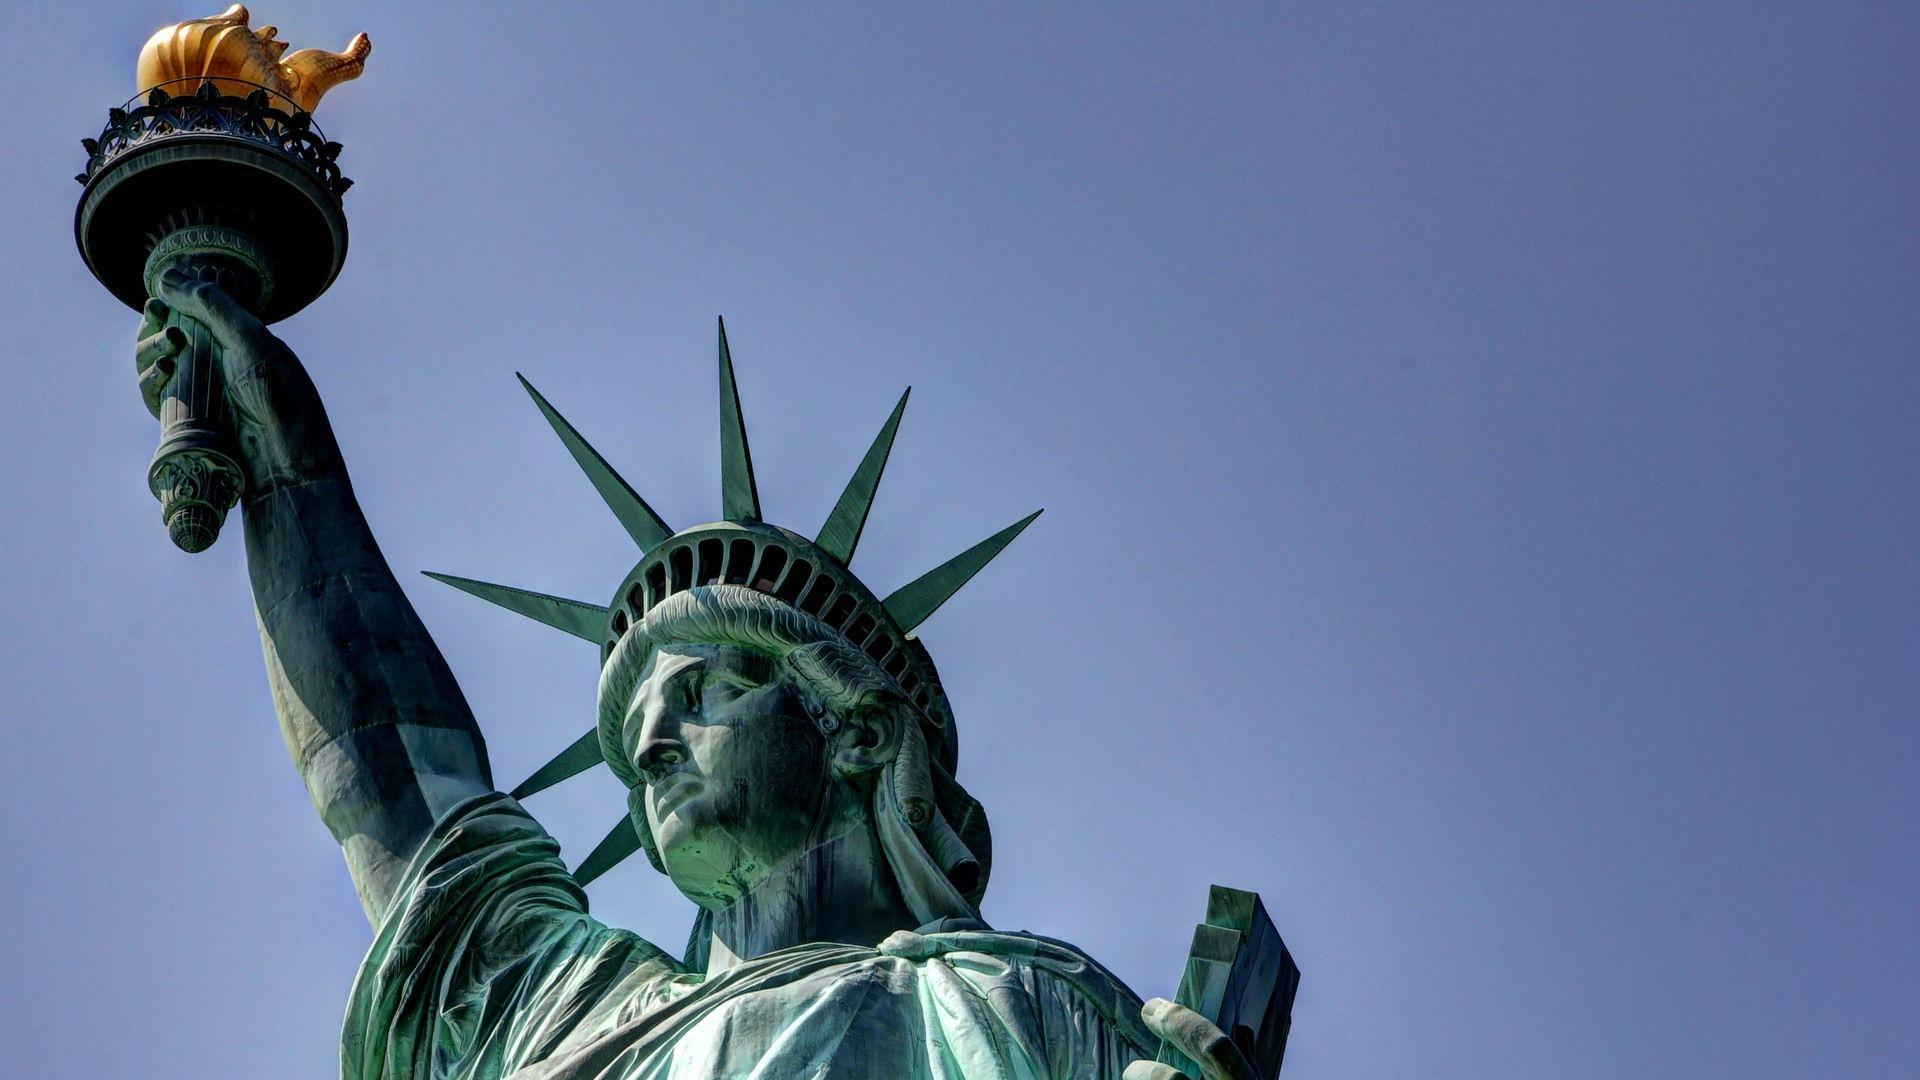 Statue Of Liberty On New York City Wallpapers M Wallpapers